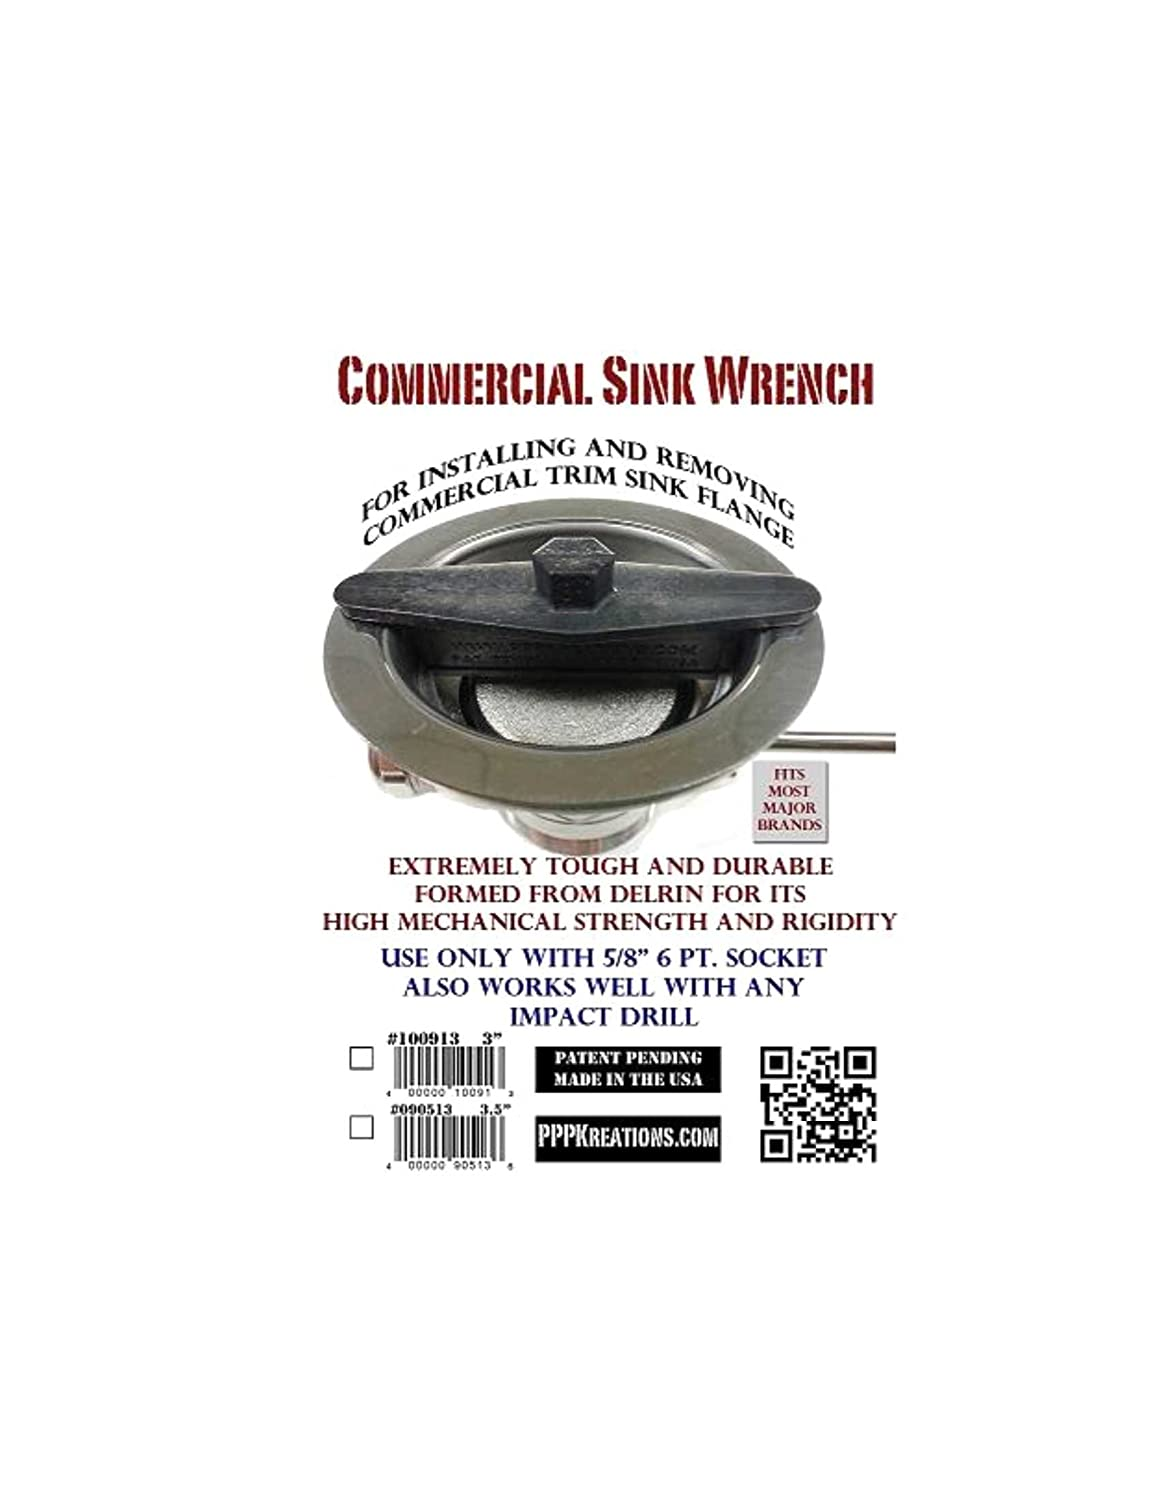 Commercial Sink Wrench 3 INCH